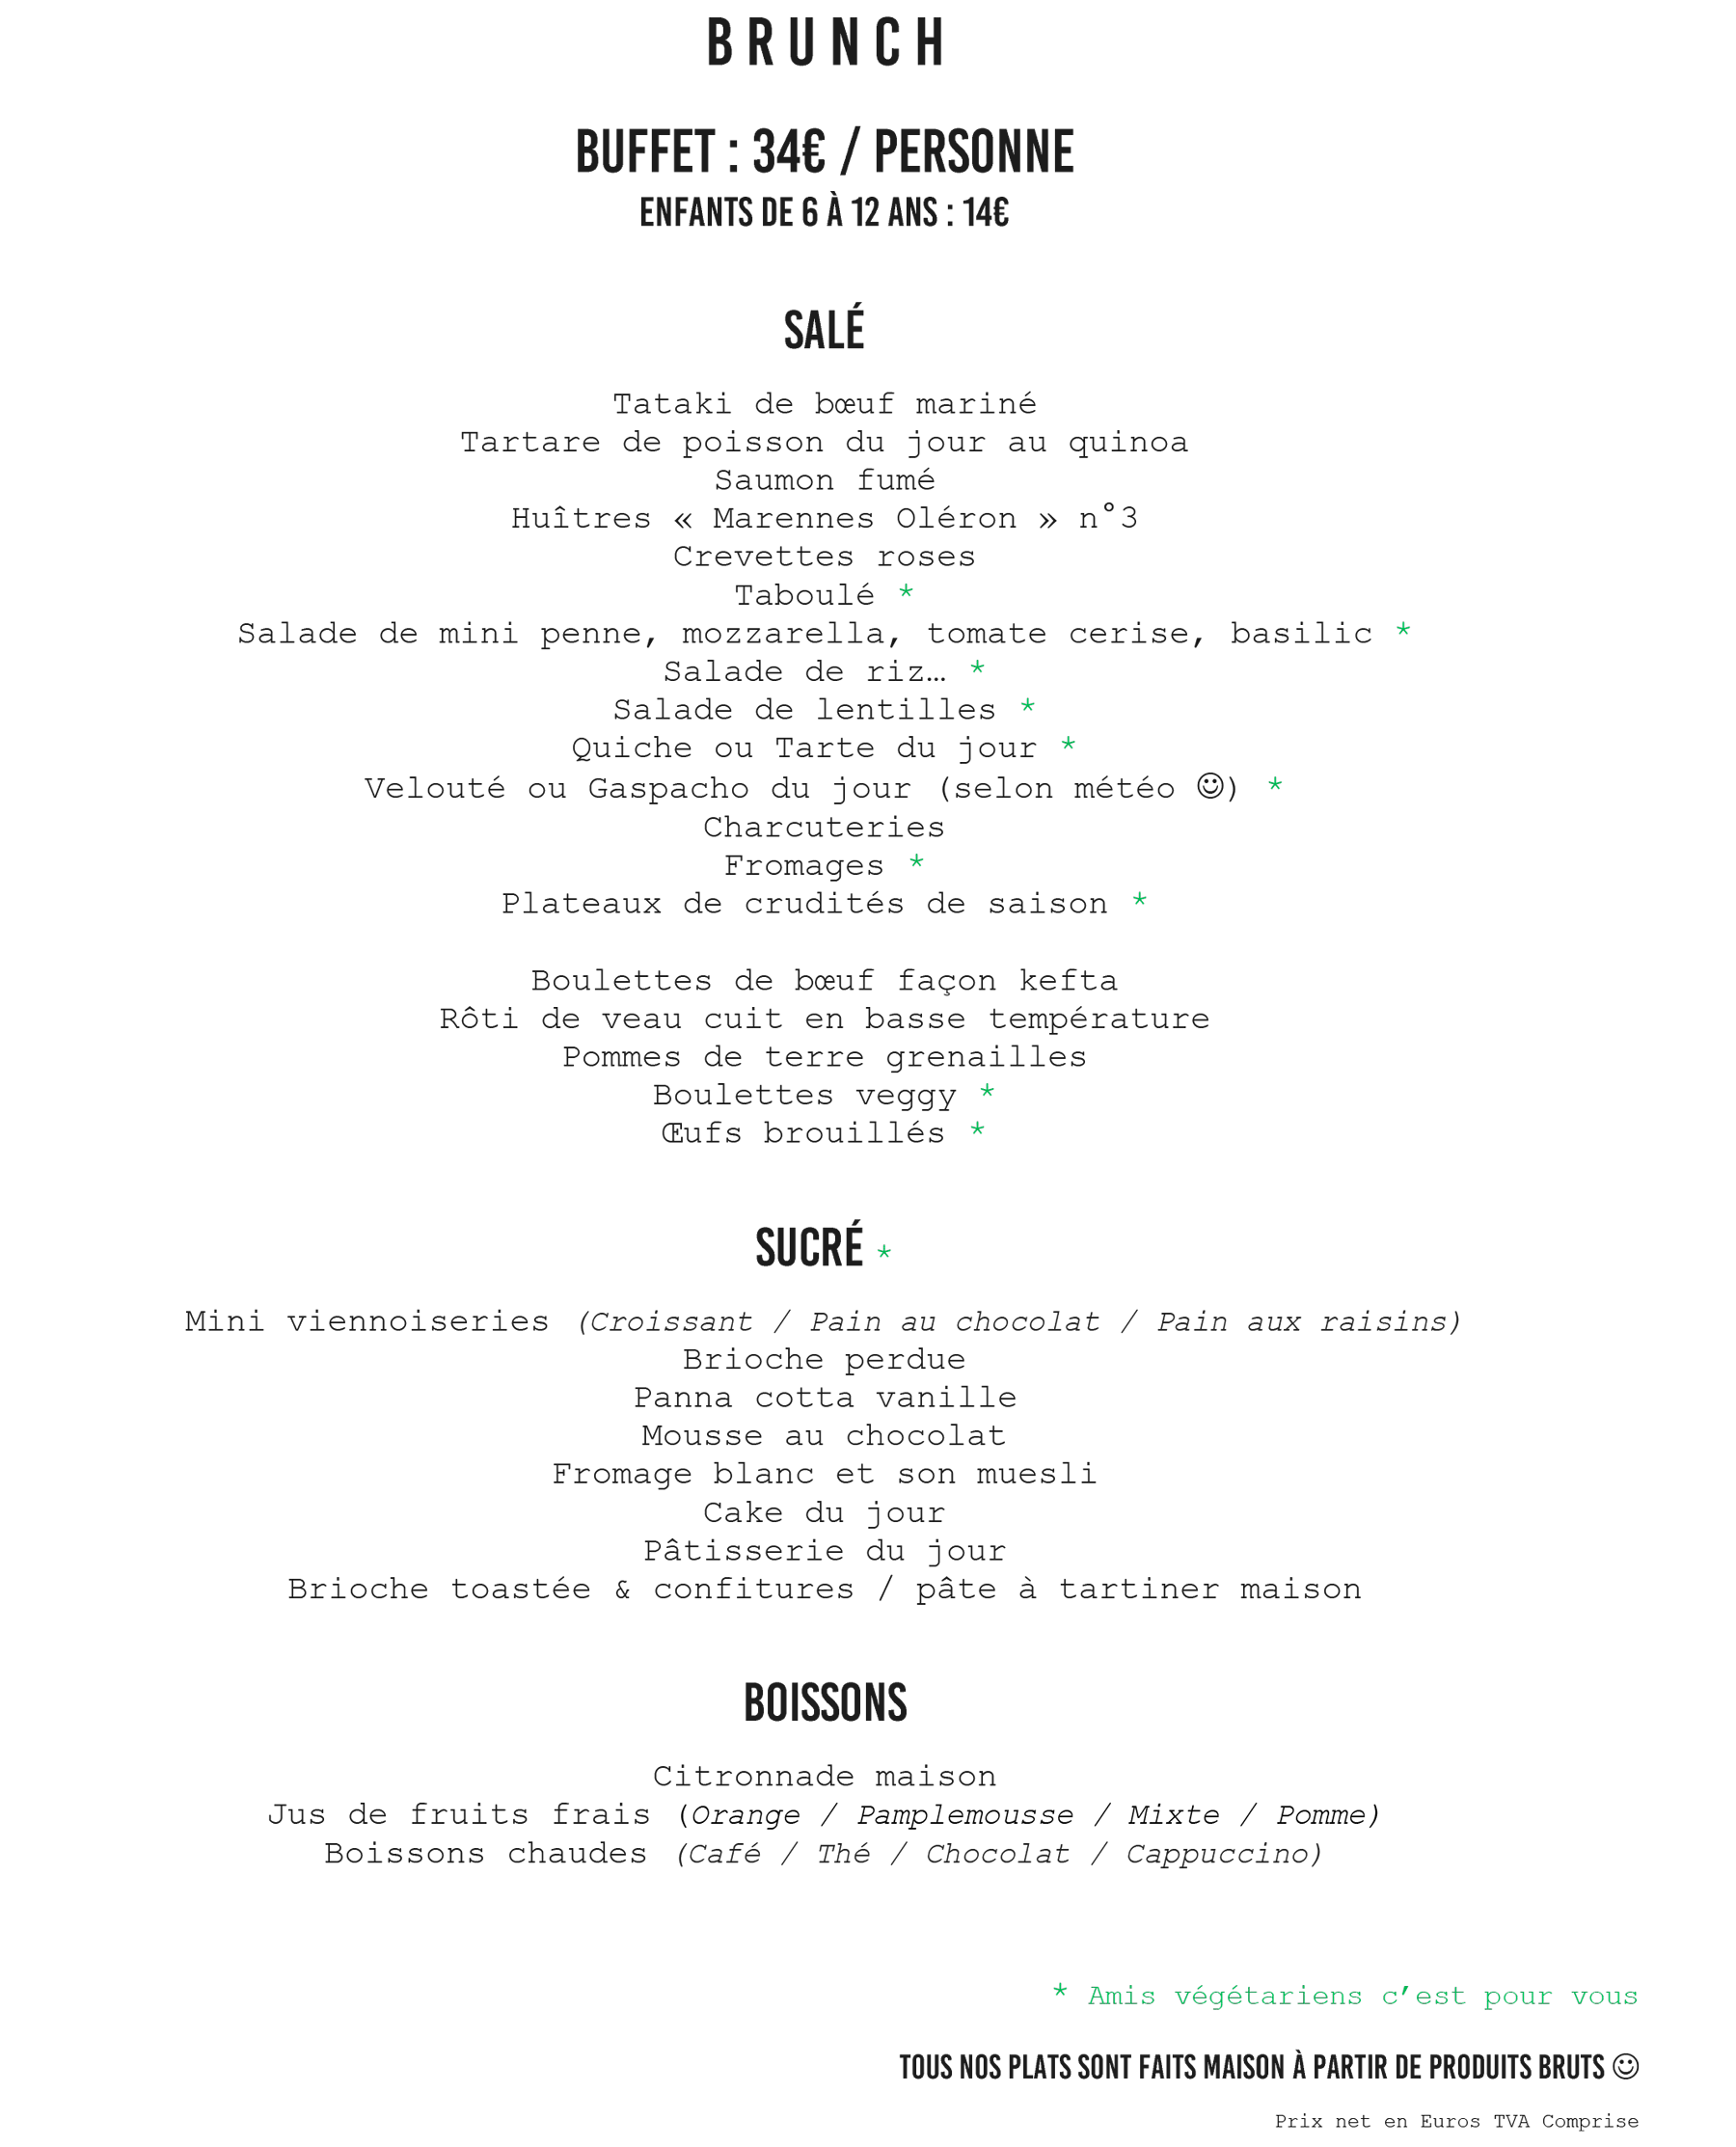 WEB-MENU-Brunch-2019.09.20